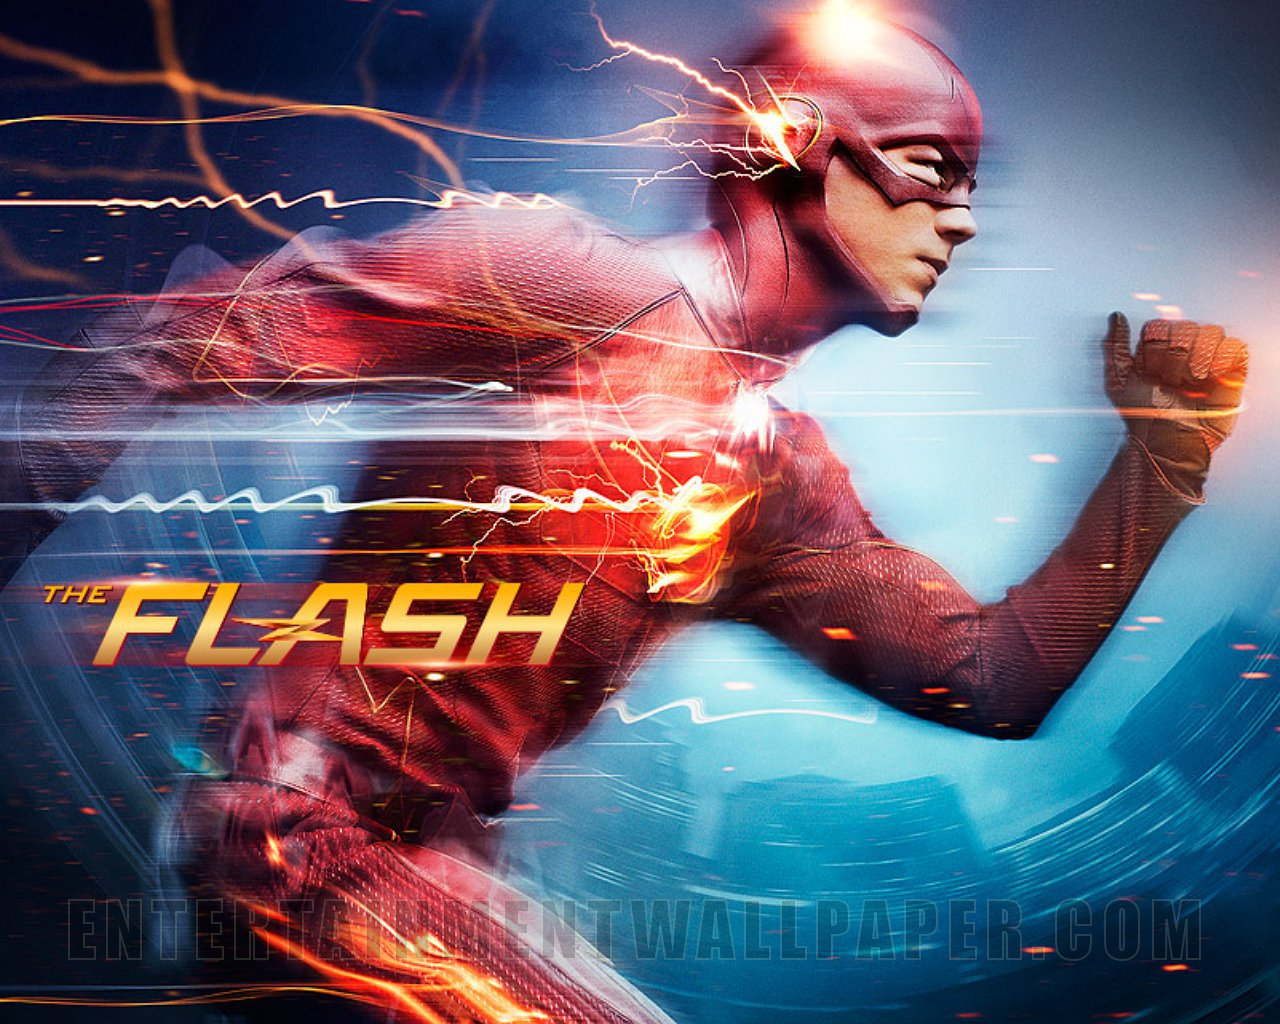 the flash wallpaper 20045041 size 1280x1024 more the flash wallpaper 1280x1024